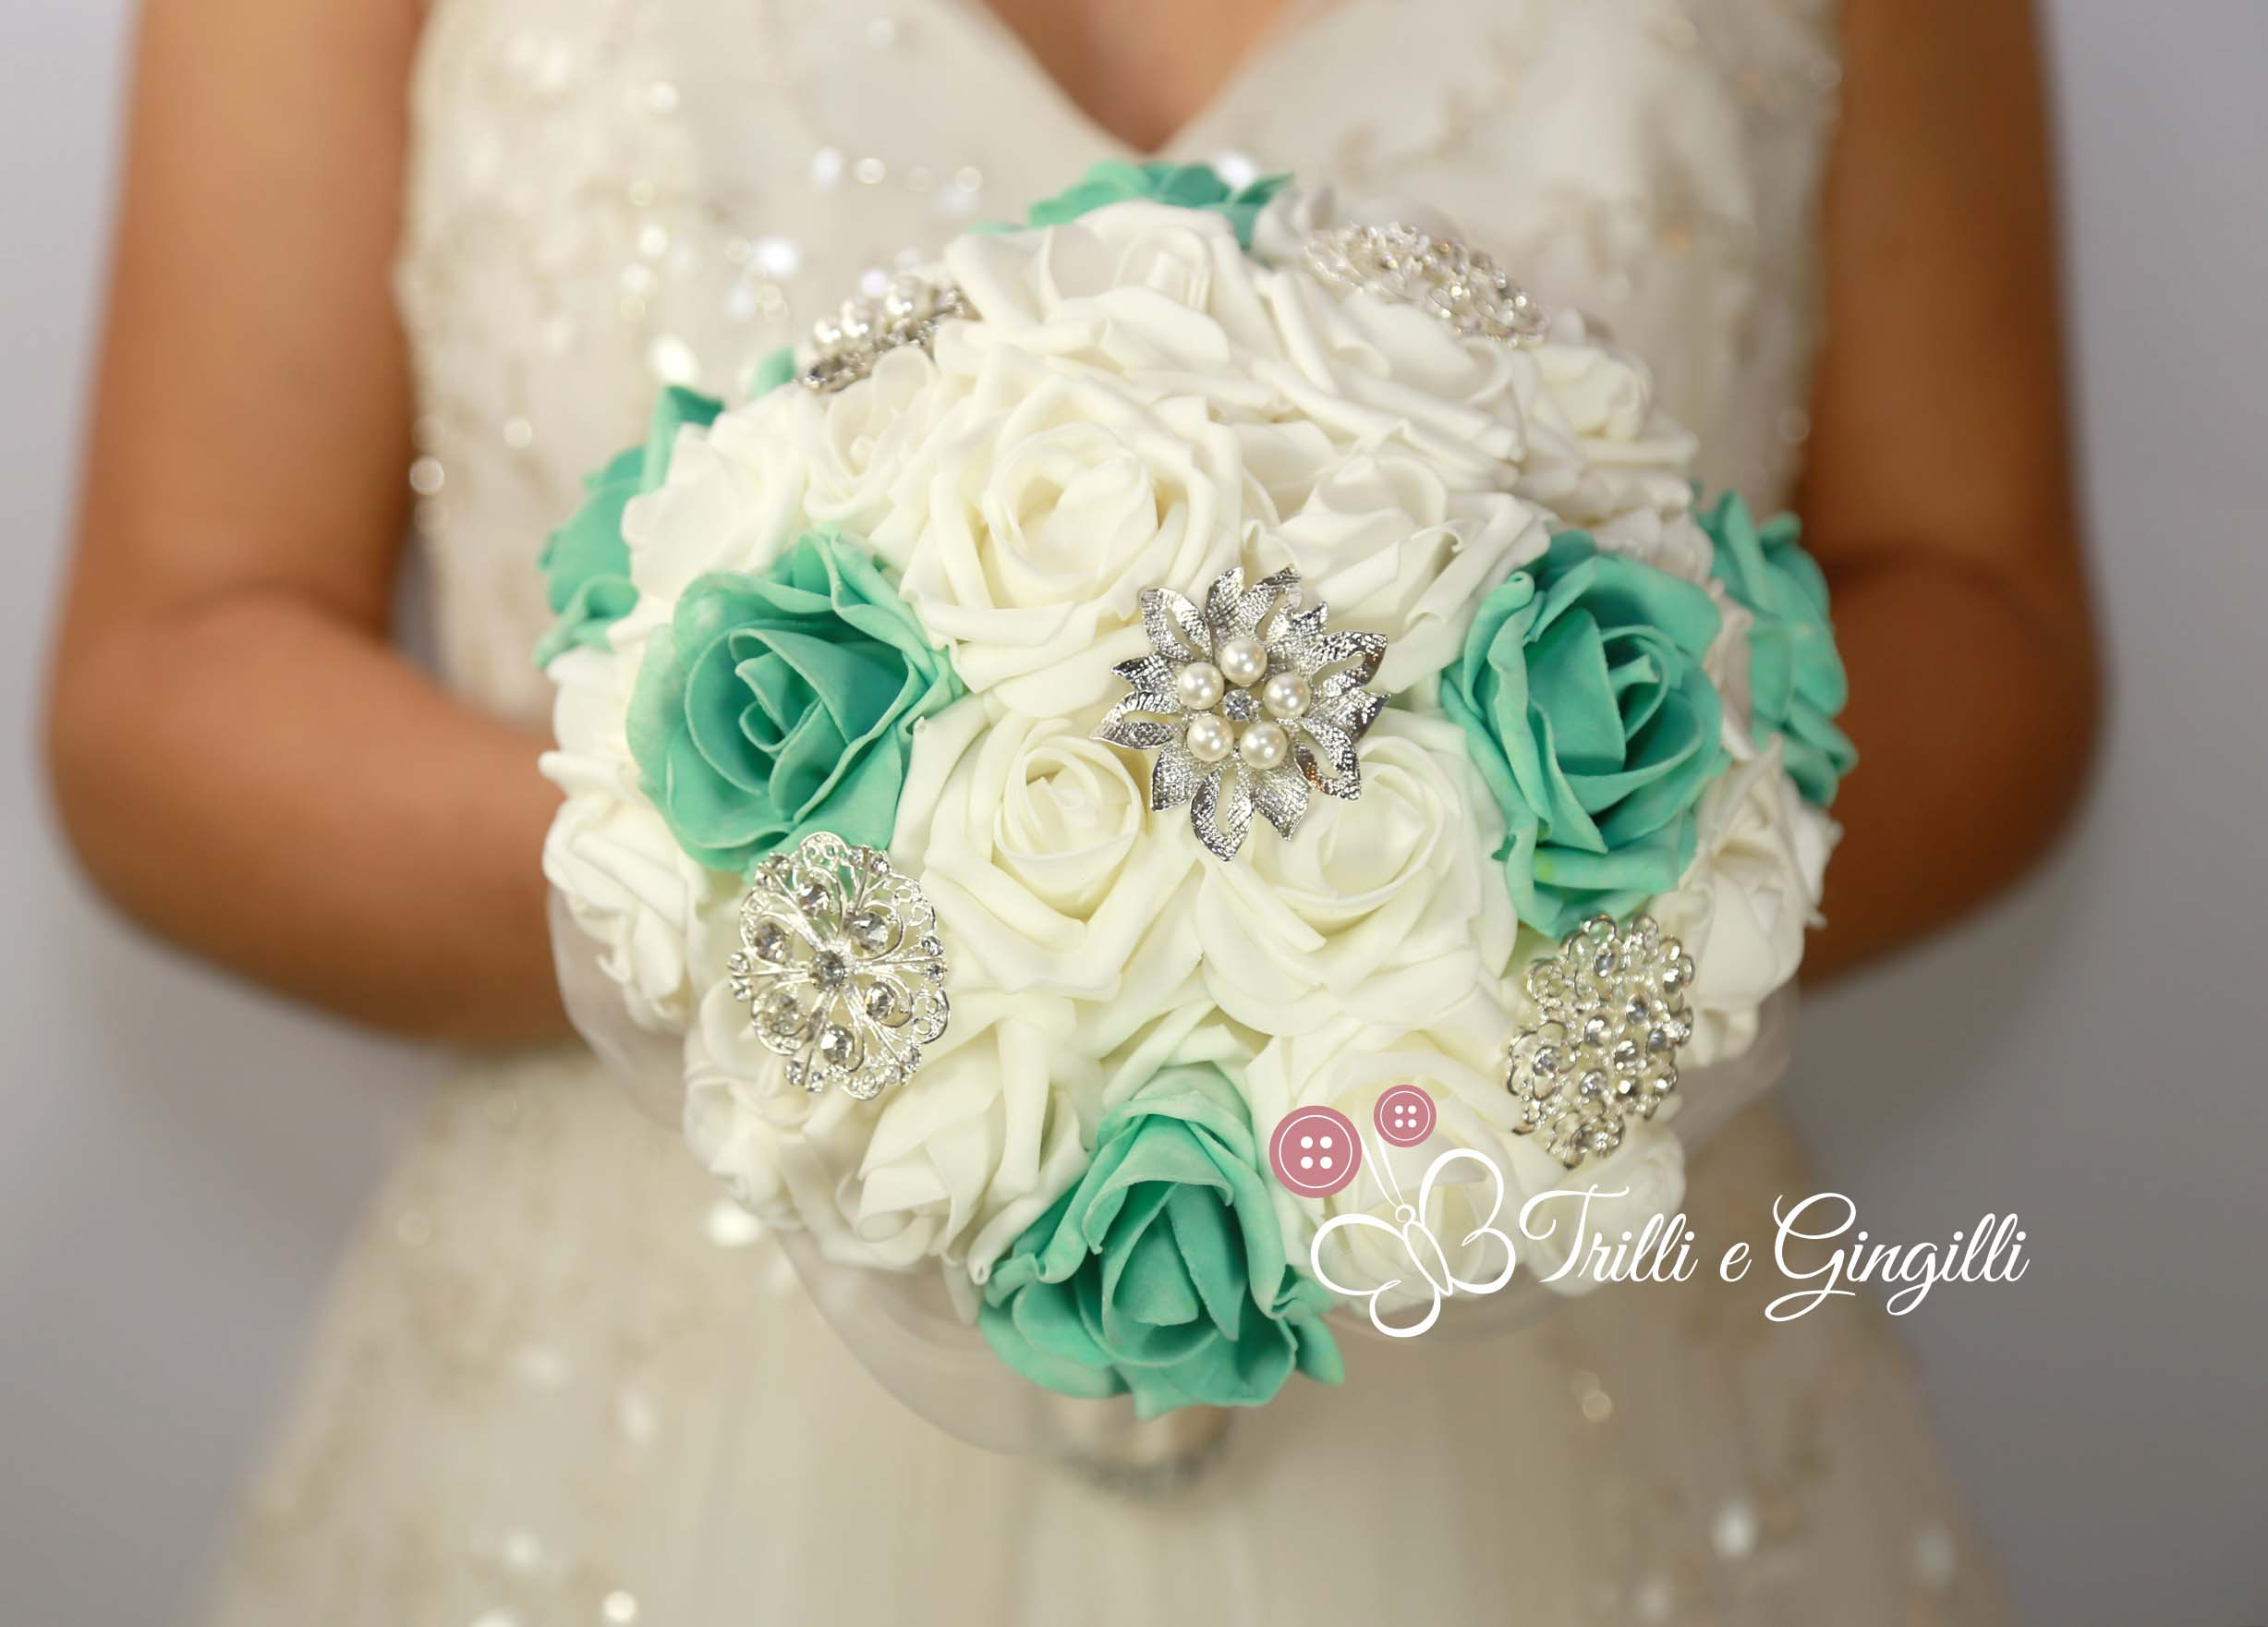 Bouquet Sposa Tiffany.Bouquet Di Rose Tiffany E Bianche Con Spille Gioiello Trilli E